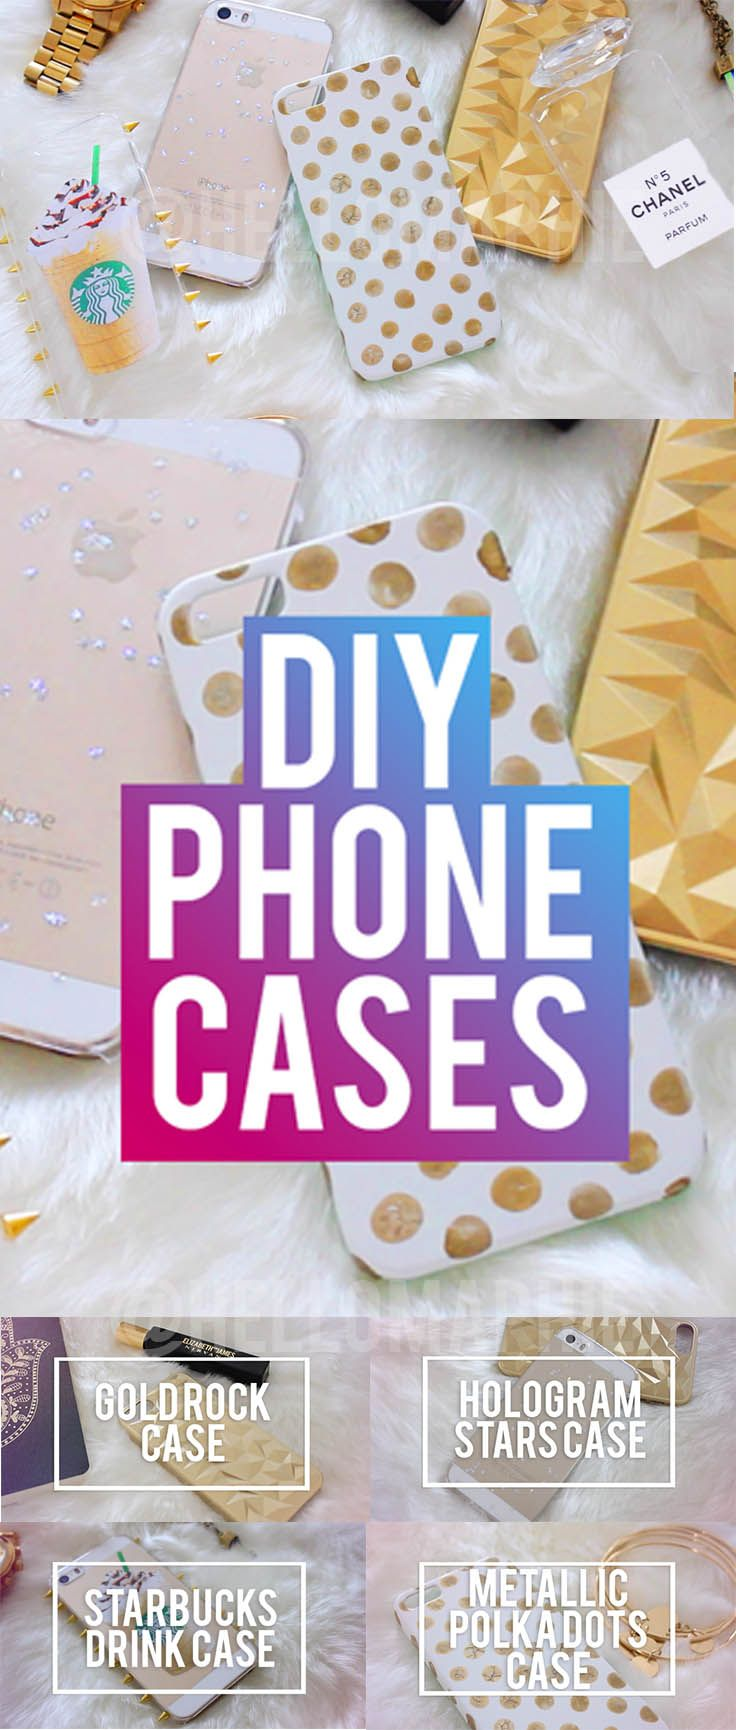 DIY INEXPENSIVE PHONE CASES | Chanel Perfume Case, Starbucks Frapp, Metallic Polka Dots, Brandy Melville and More! #DIY #DiyPhoneCase #DIYiPhoneCase https://www.youtube.com/watch?v=GlncQlKZ9lU